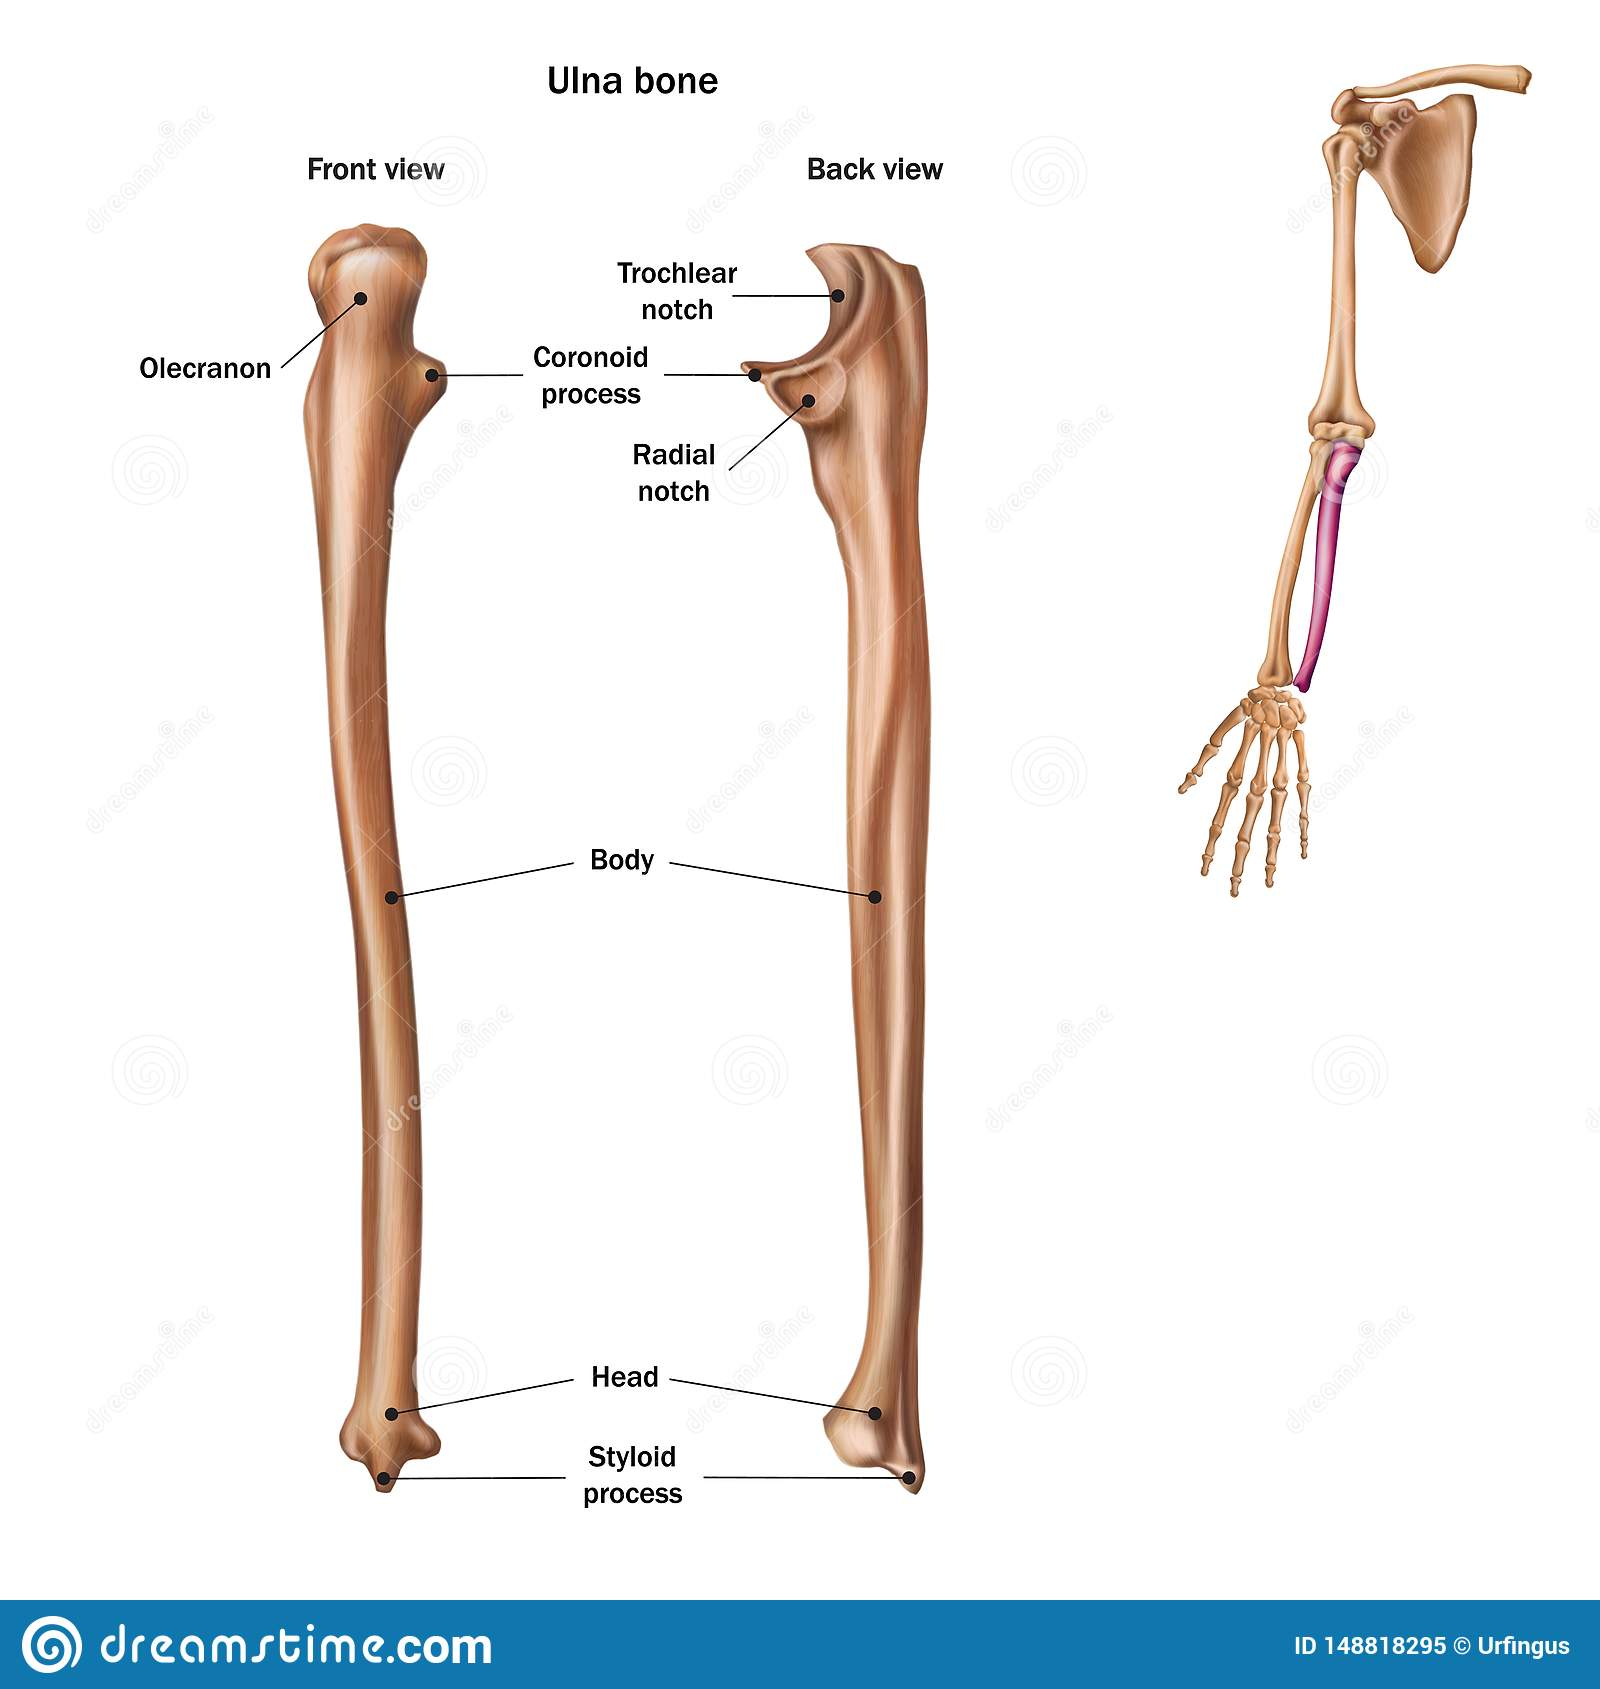 The Structure Of The Ulna Bone With The Name And Description Of All Sites  Back And Front View